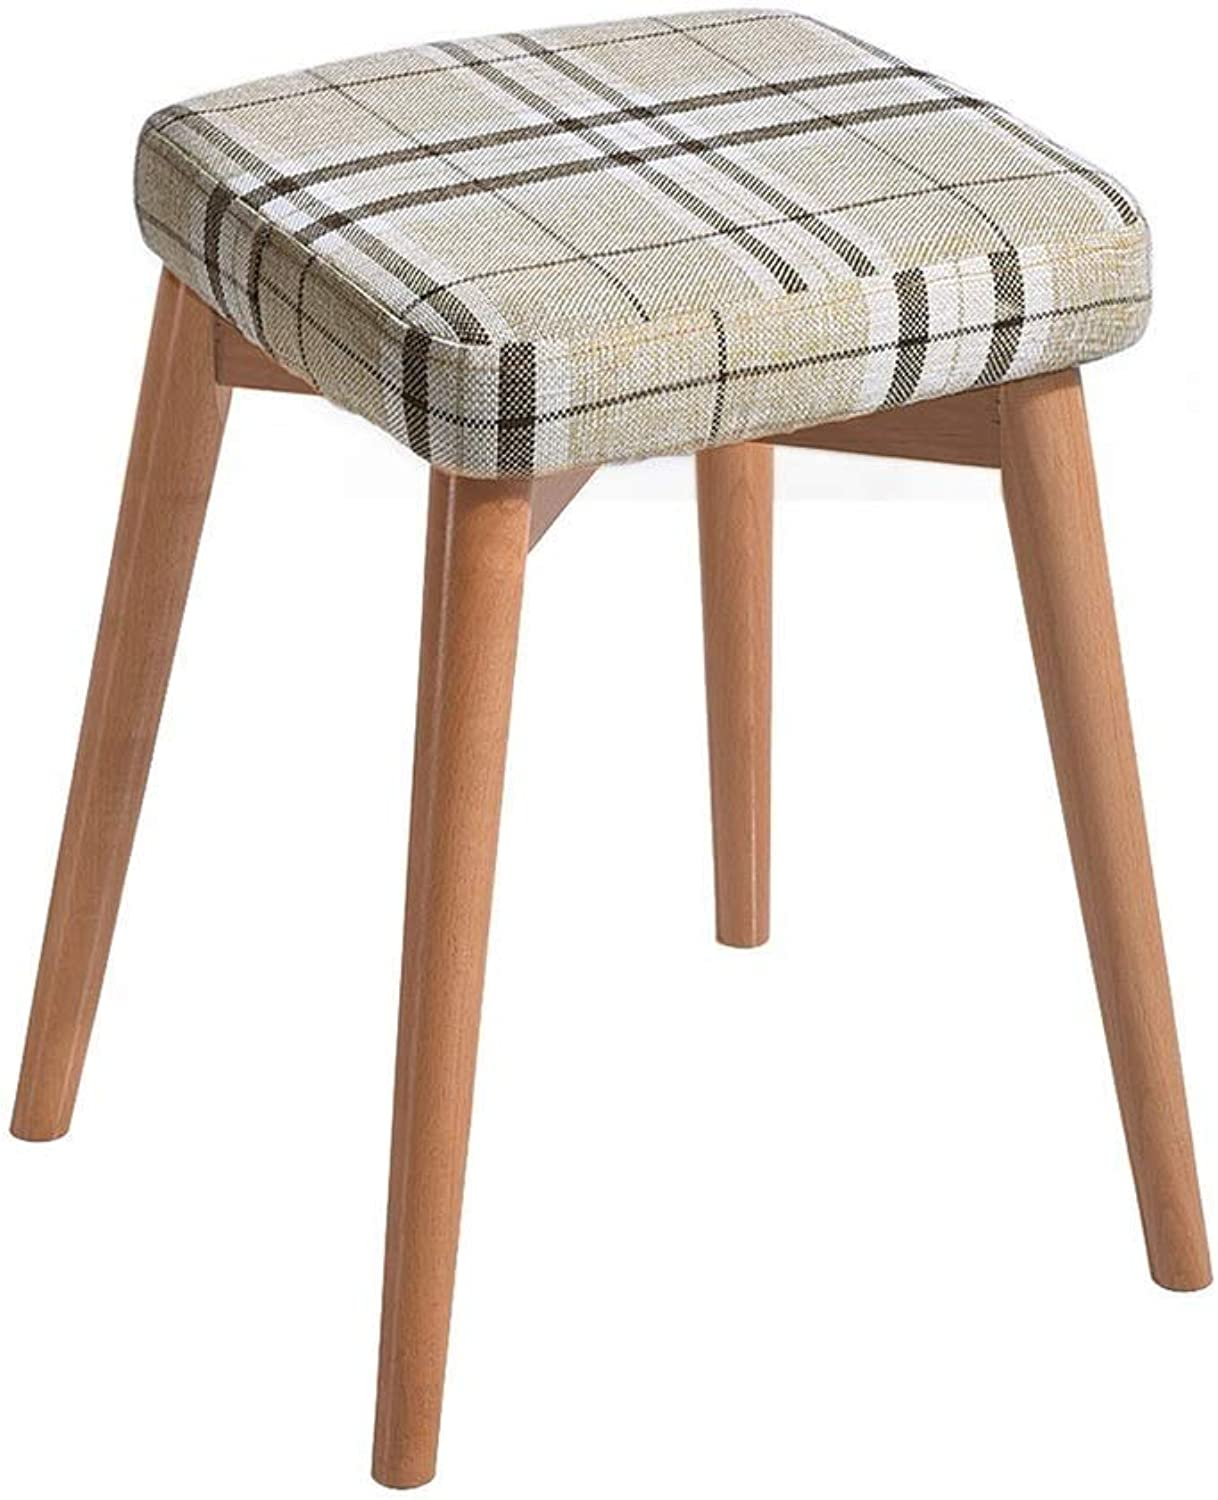 Solid Wood Dressing Stool Chair Creative Fashion Bench Nordic Upholstered Stool 4 Legs and Cotton Linen Cover for Living Room Bathroom Kitchen FENPING (color   Lattice)